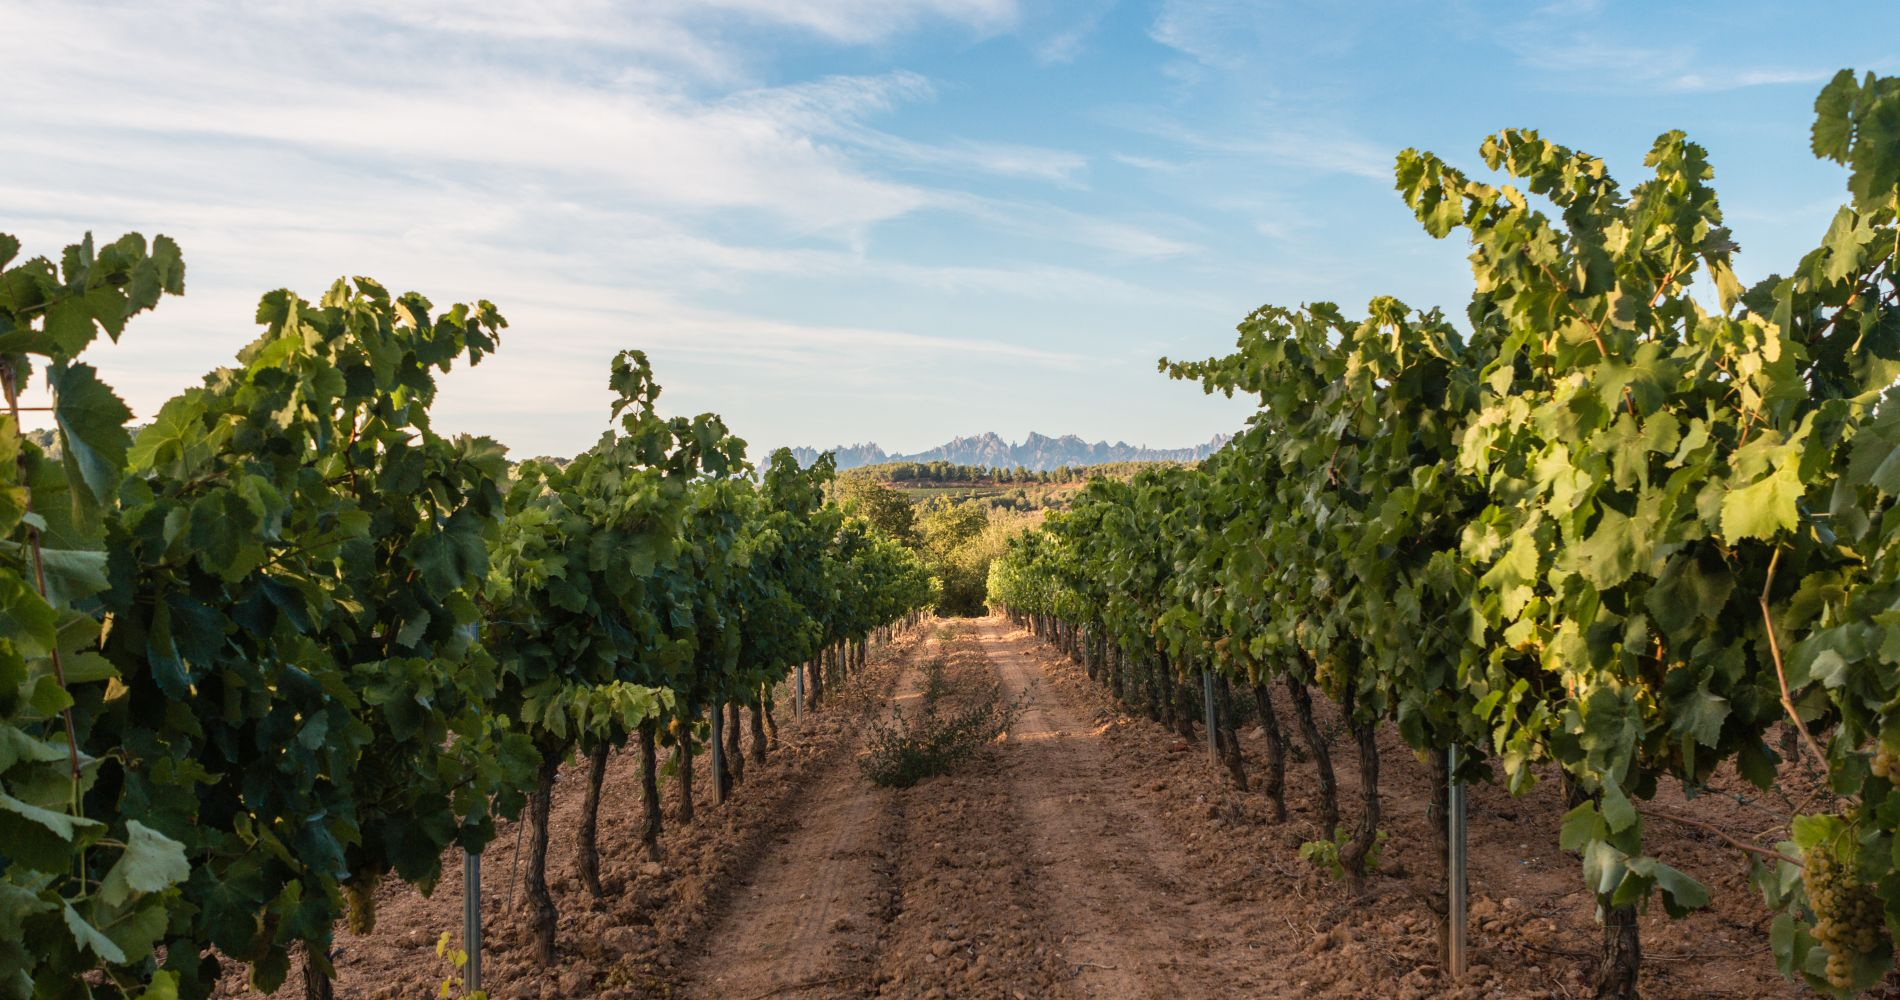 4x4 Winery Tour with Tapas & Wine Tasting from Barcelona for Two